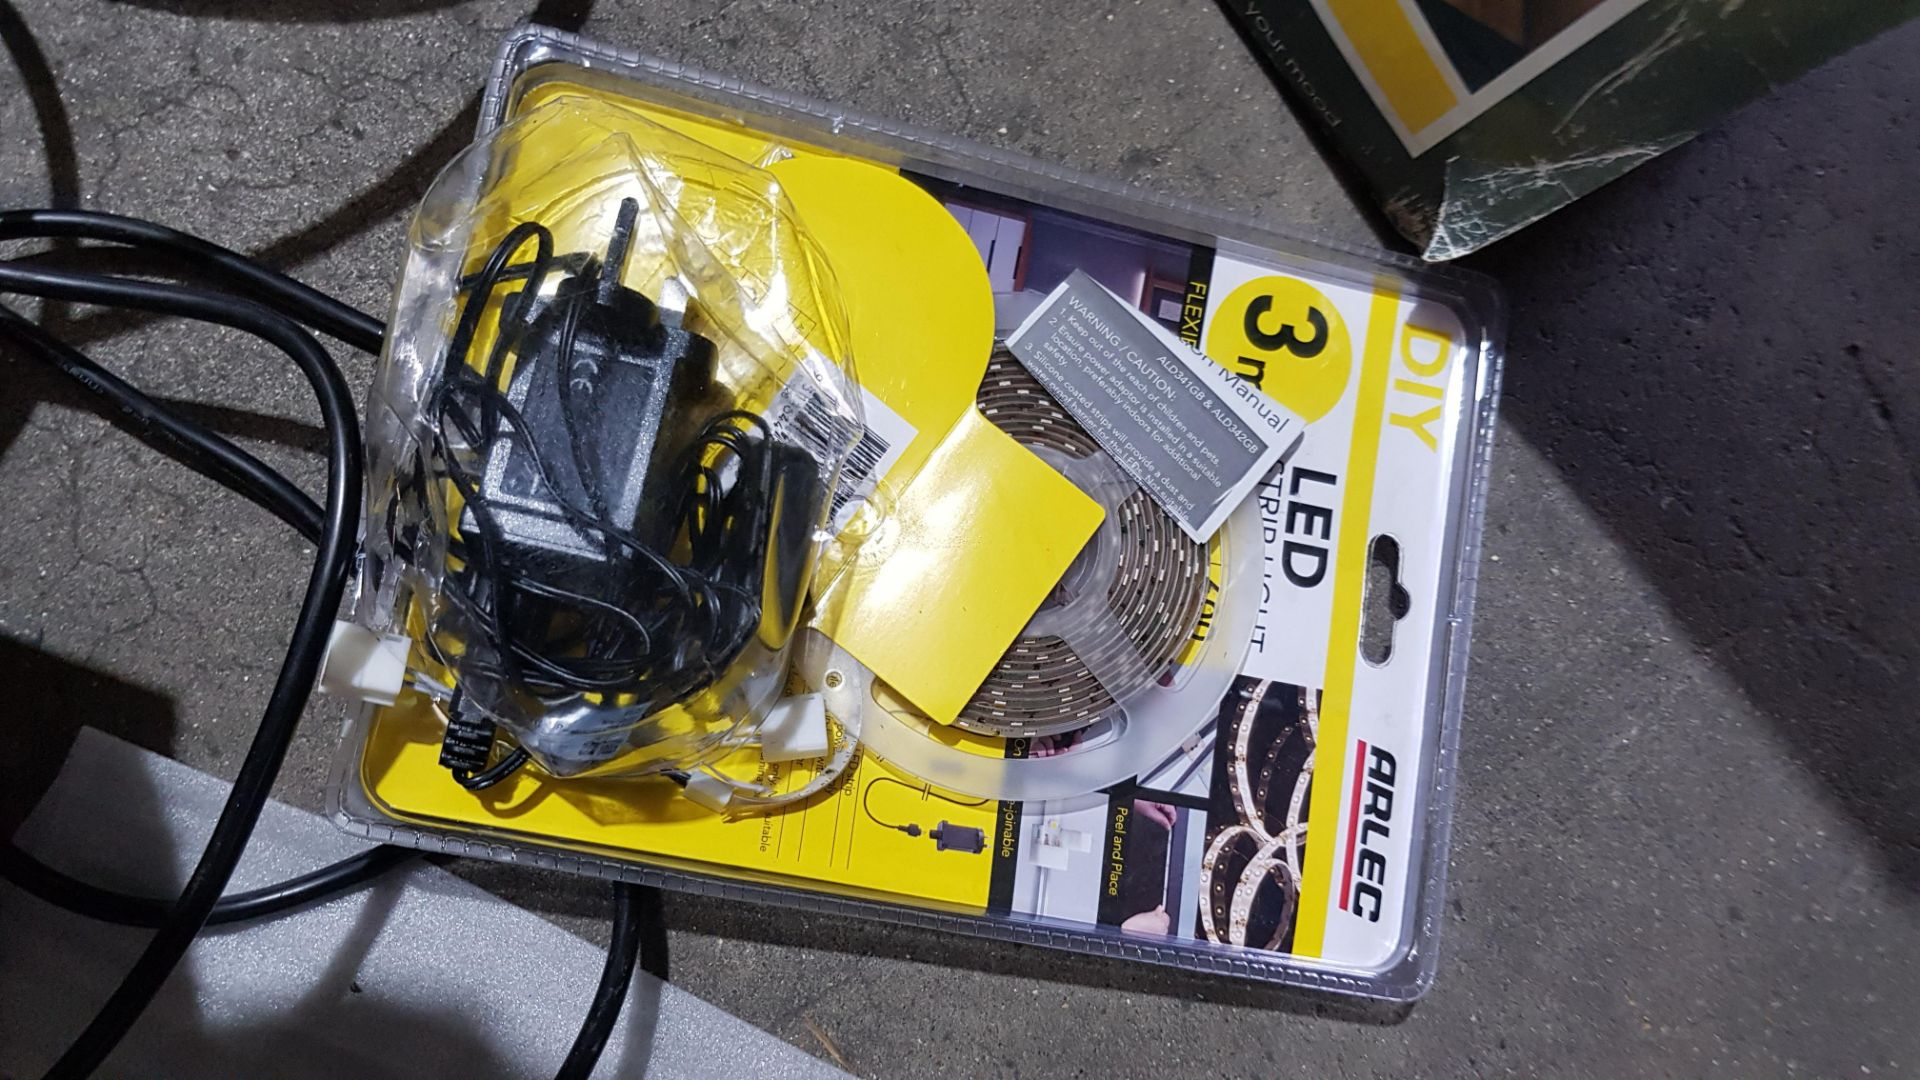 (3F) Fibre Optic / LED Lighting Lot. To Include 1x Optic Lighting InFloor Fibre Optic Lighting Kit. - Image 10 of 12